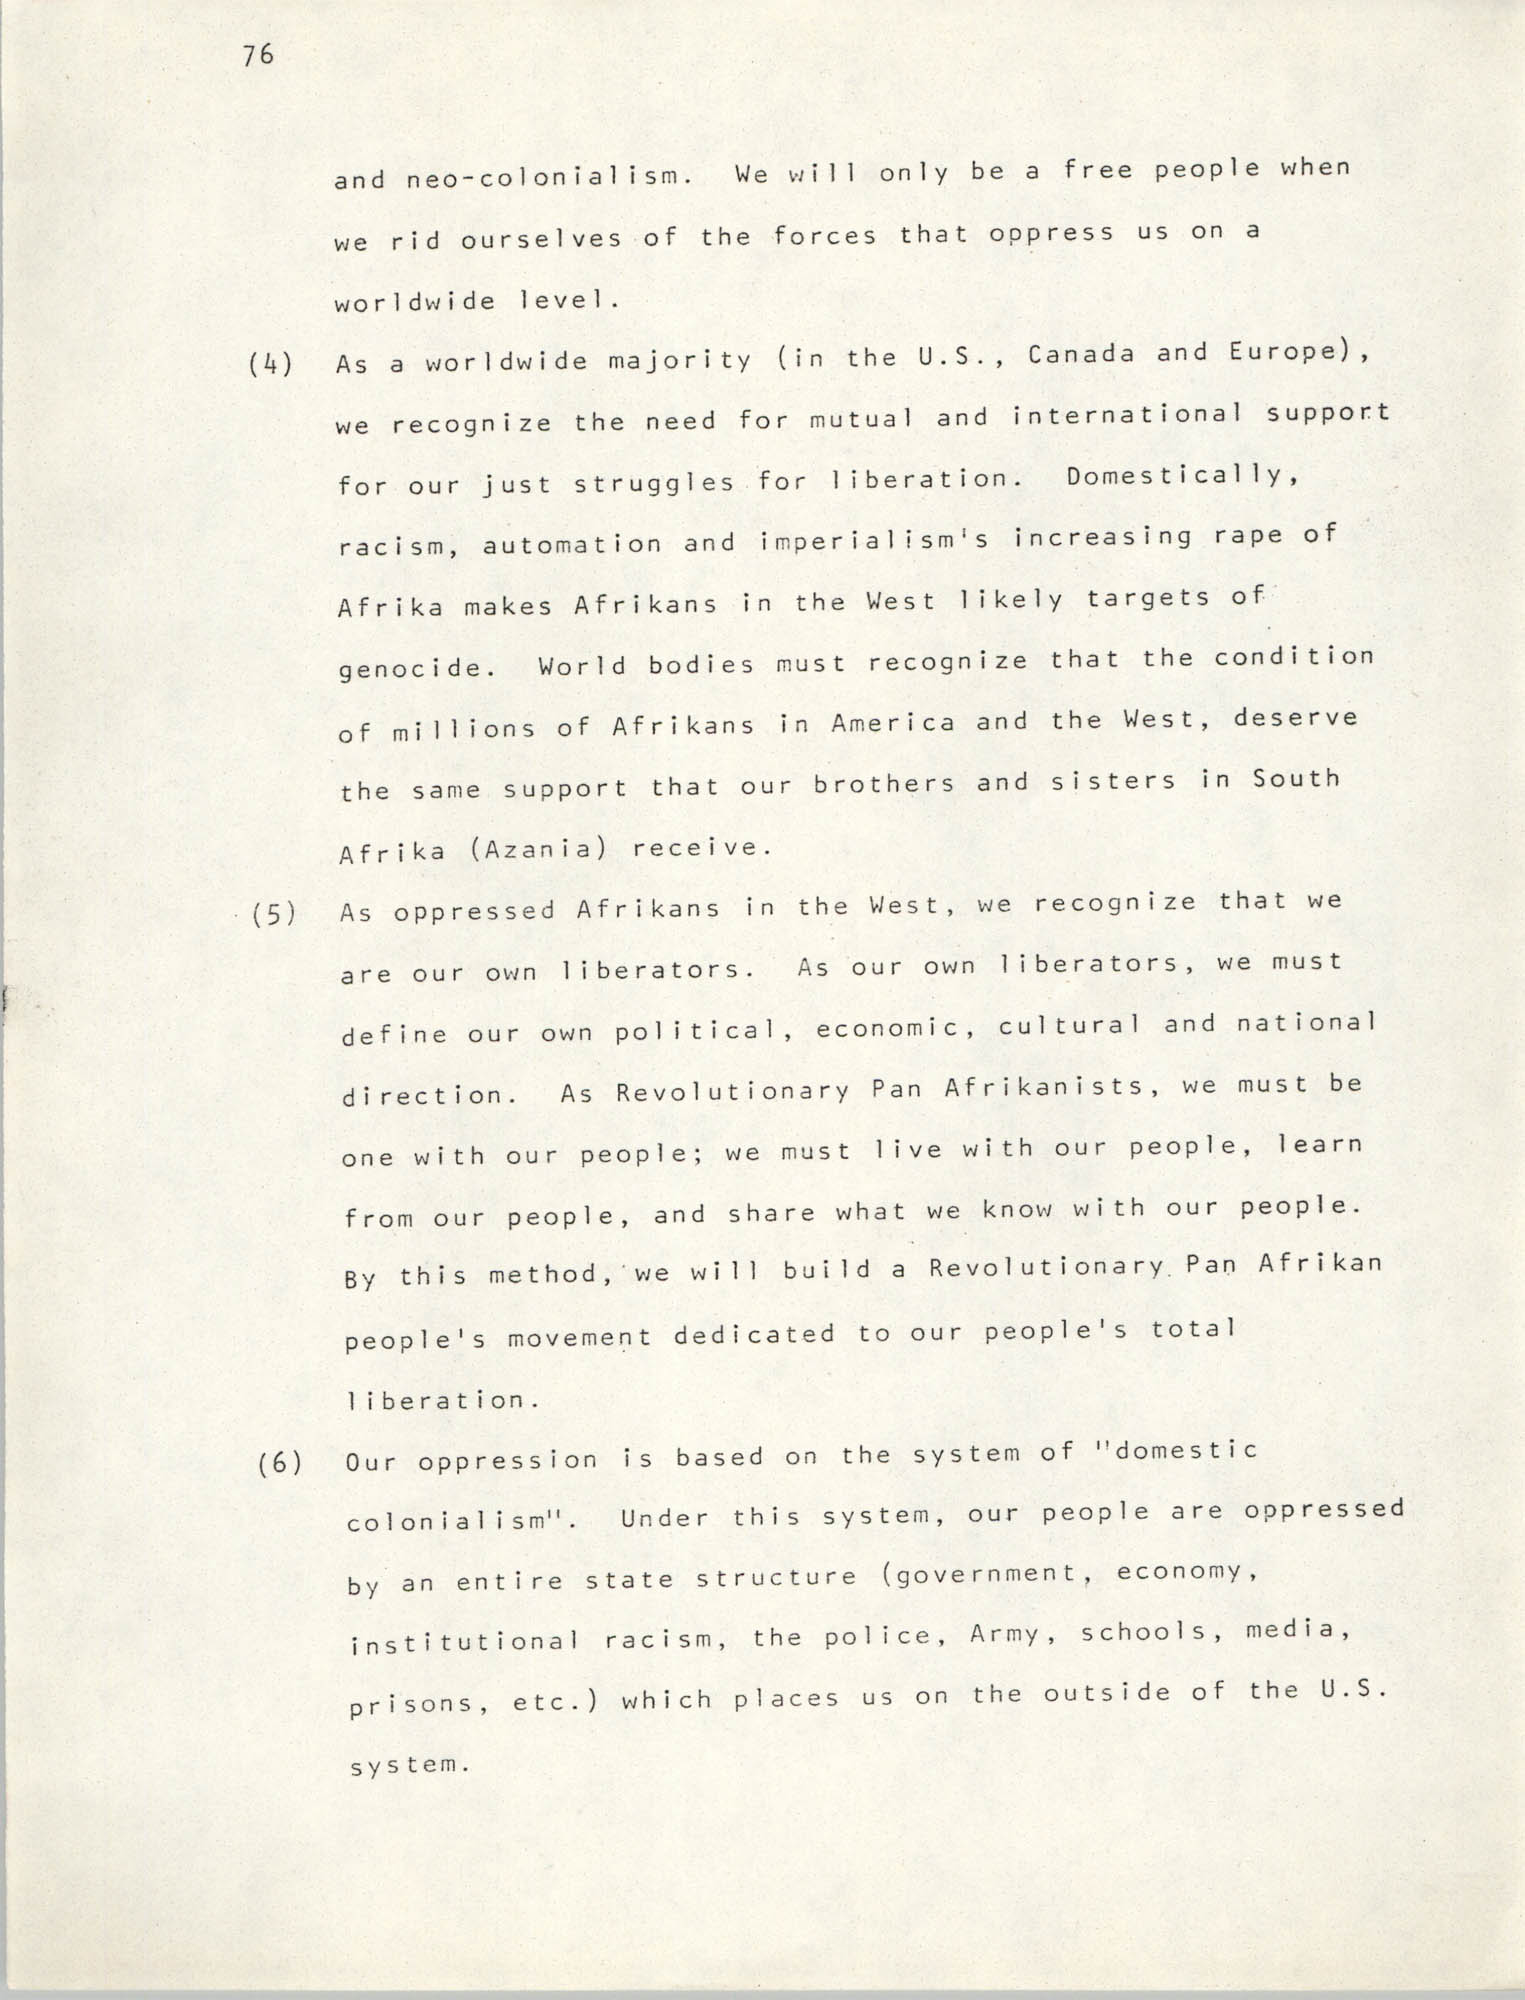 Pan-African Committee of the Black United Front, Page 76